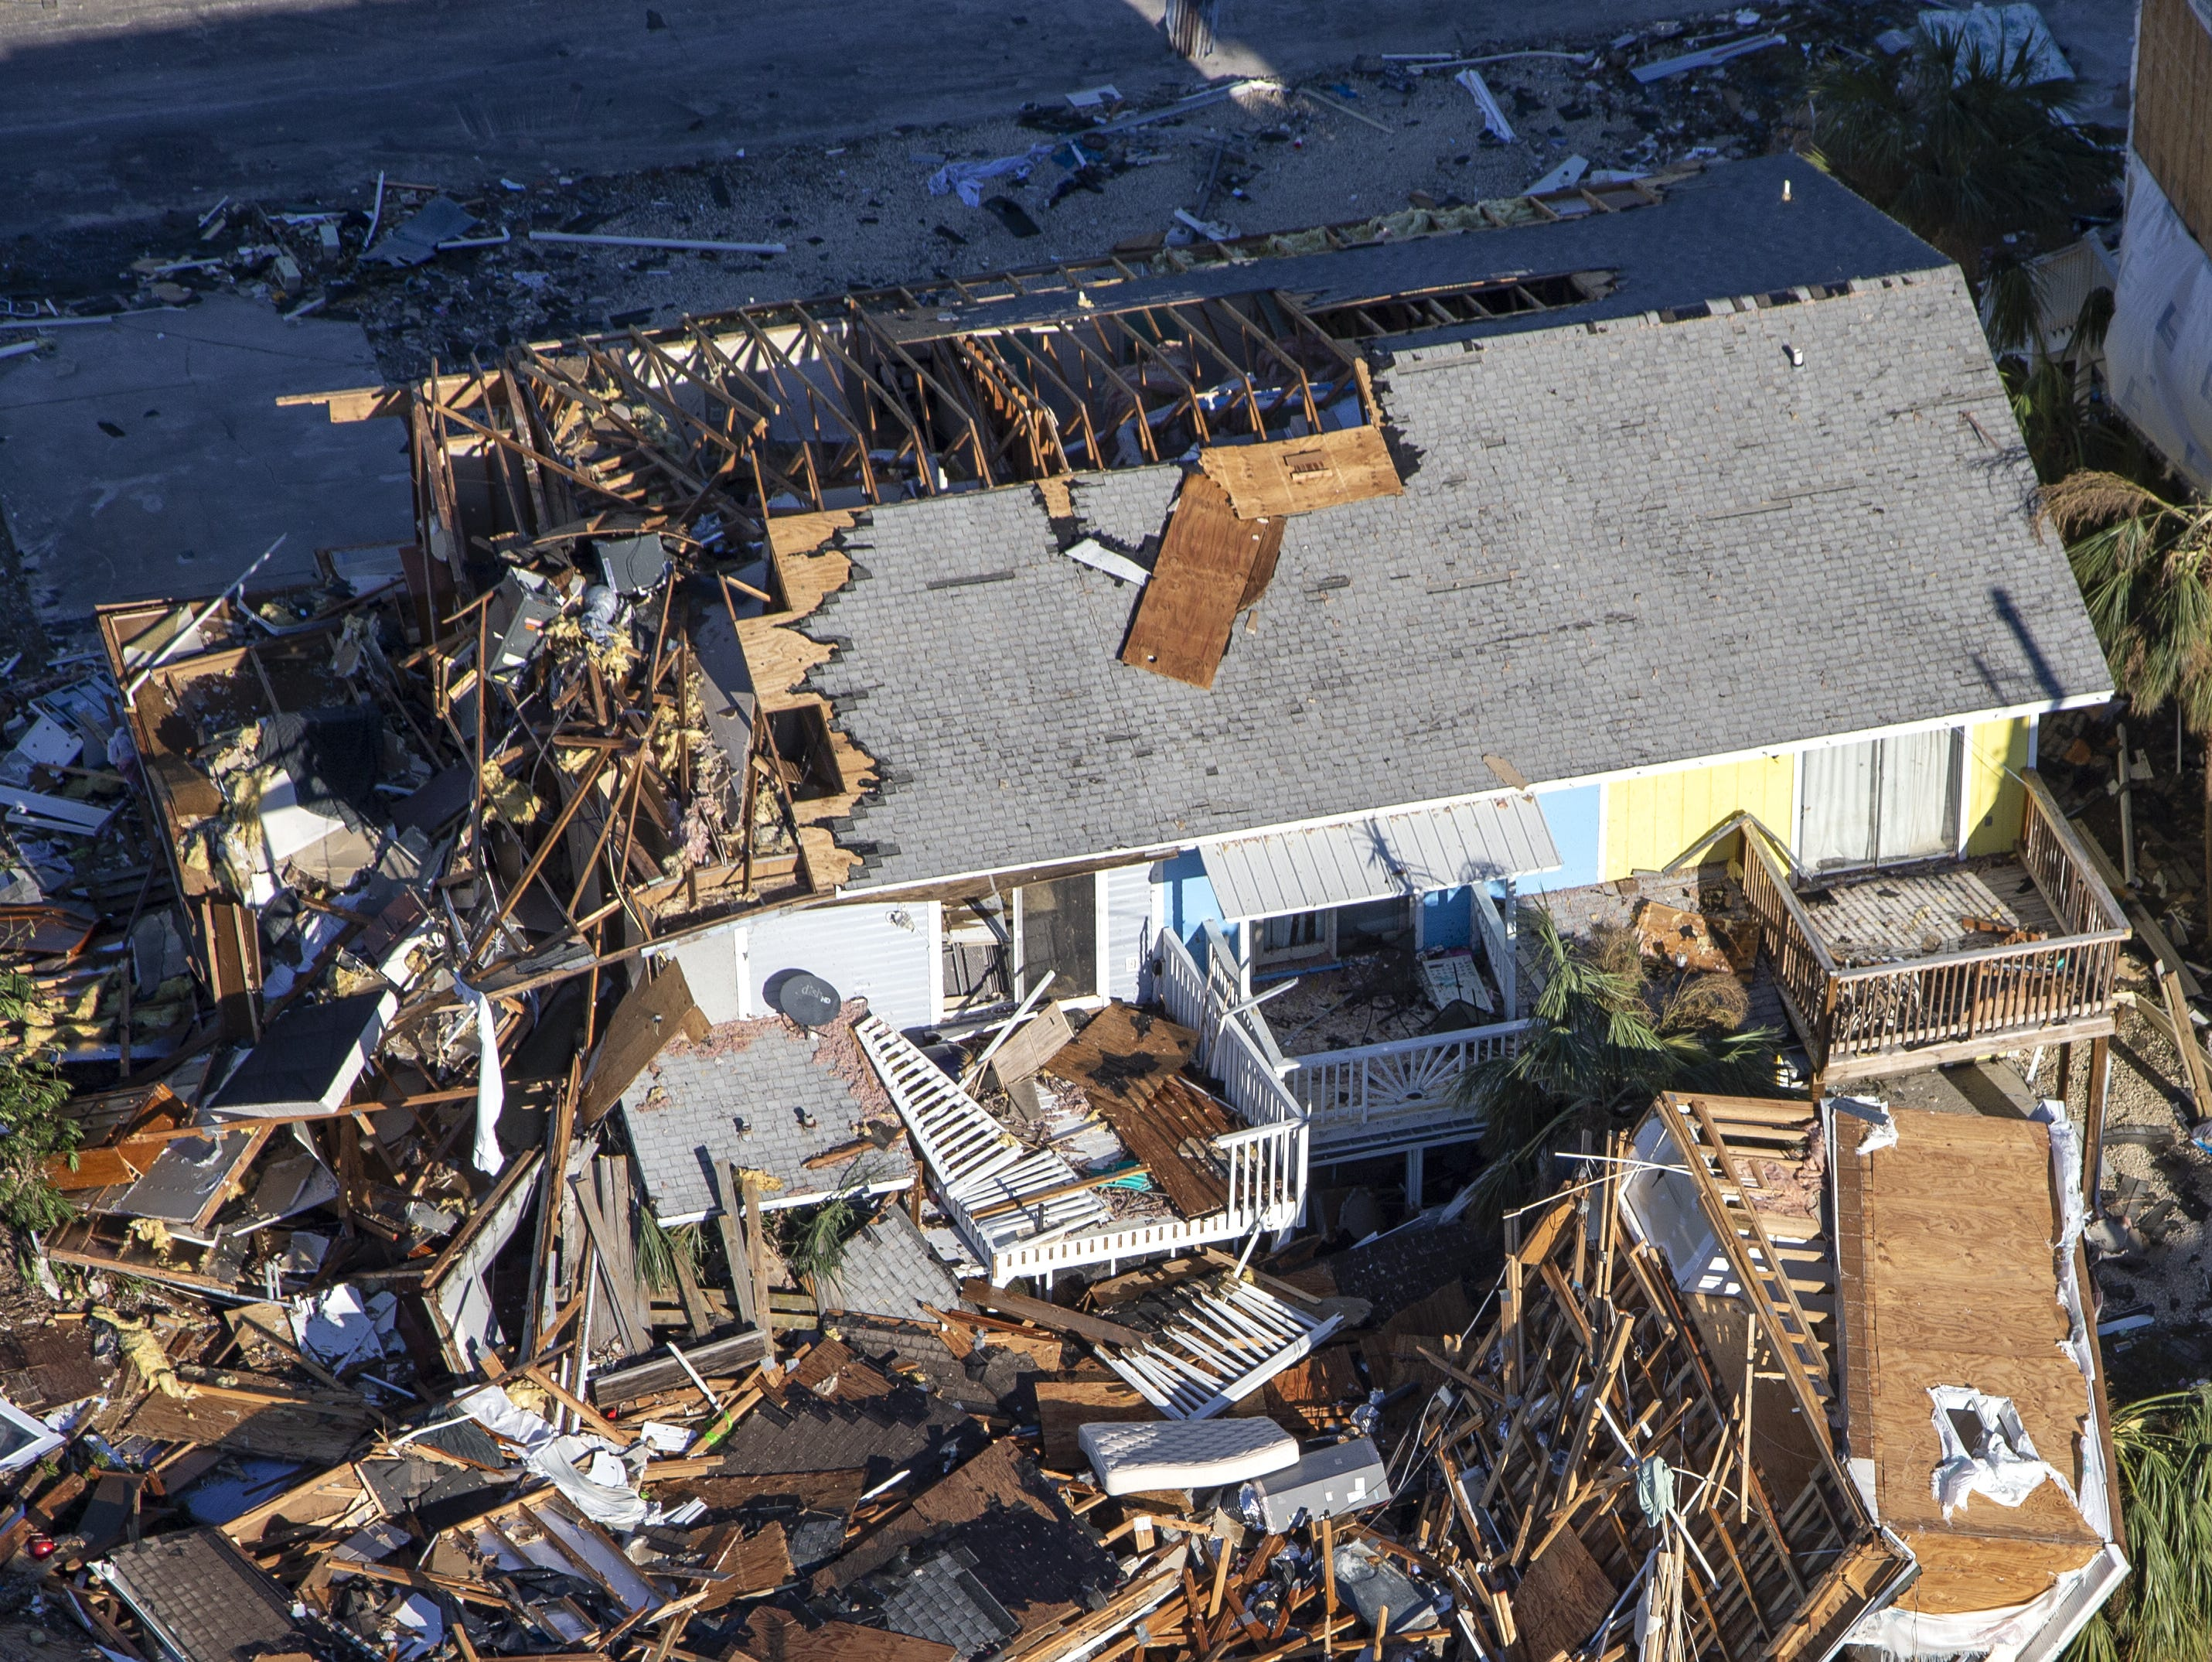 MEXICO BEACH, FL - OCTOBER 12: Homes and businesses along US 98 are left in devastation by Hurricane Michael on October 12, 2018 in Mexico Beach, Florida. At least 14 people have died across the South since Hurricane Michael made landfall along the Florida Panhandle Wednesday as a Category 4 storm. (Photo by Mark Wallheiser/Getty Images)